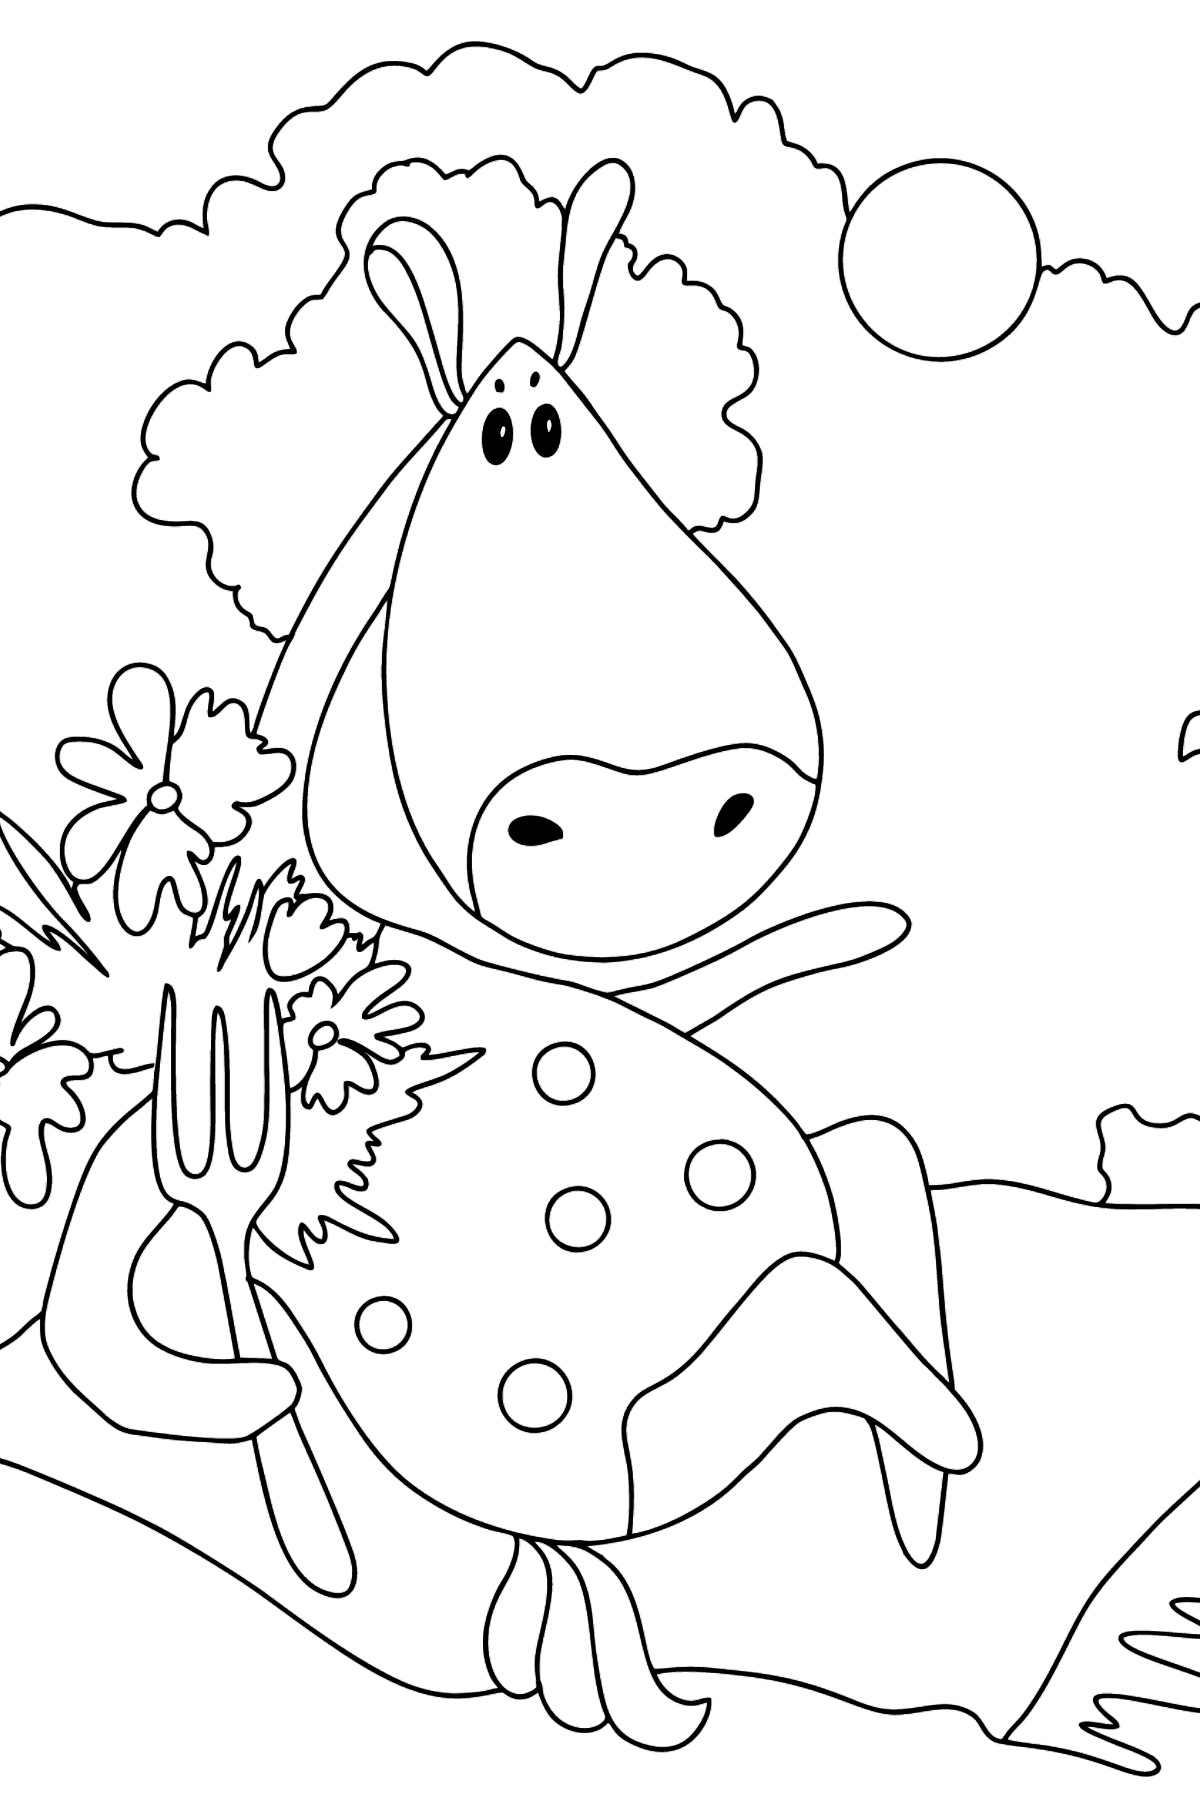 Complex coloring page a horse on the carpet - Coloring Pages for Kids